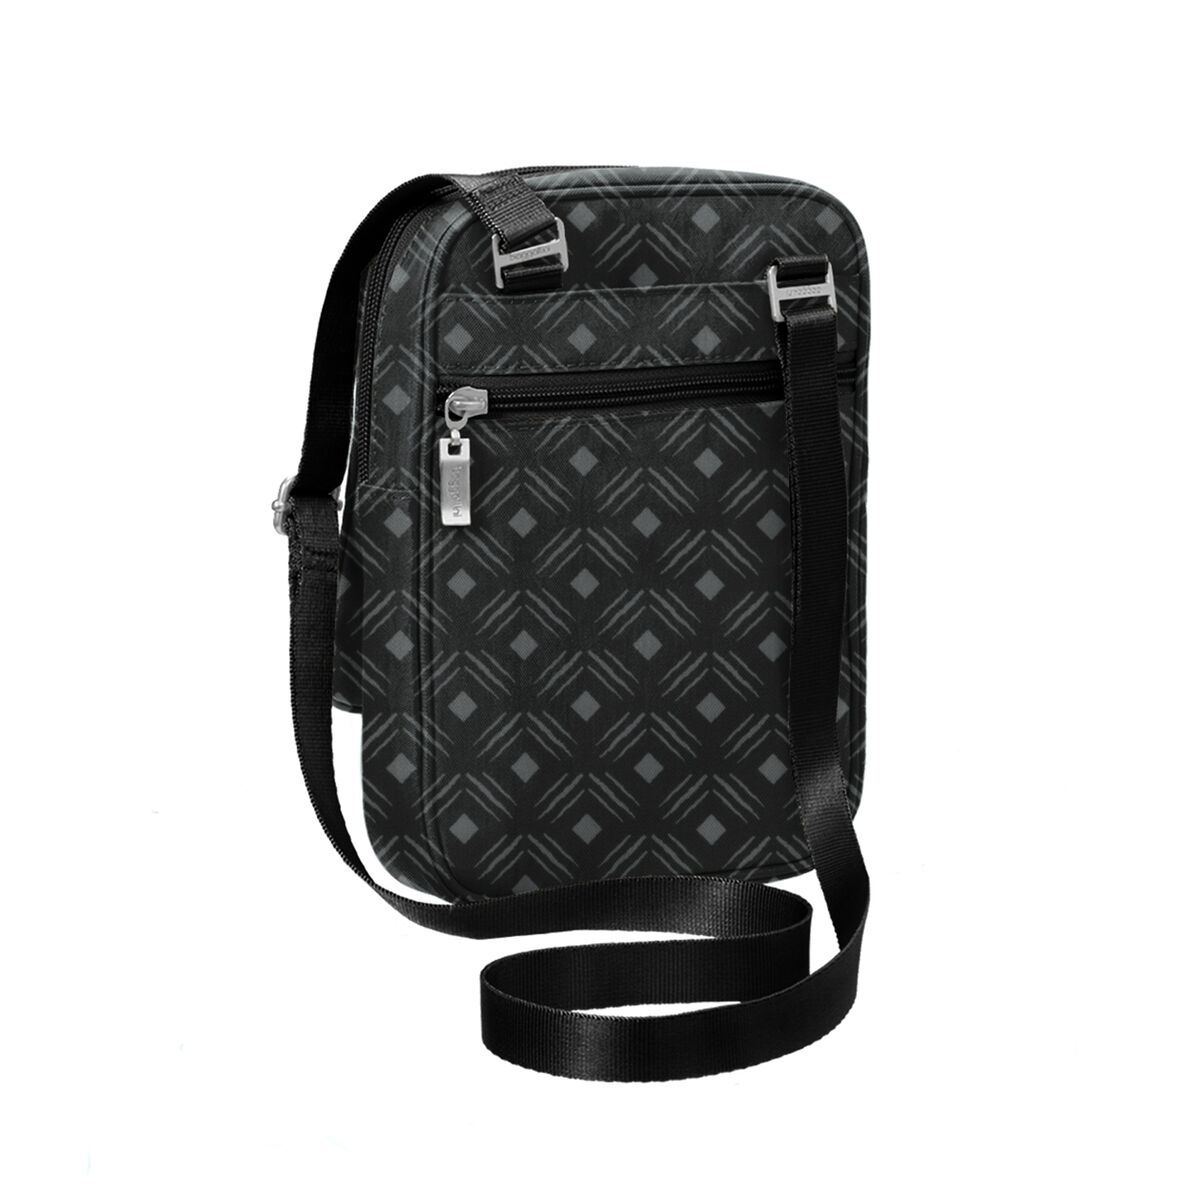 rfid journey crossbody bag